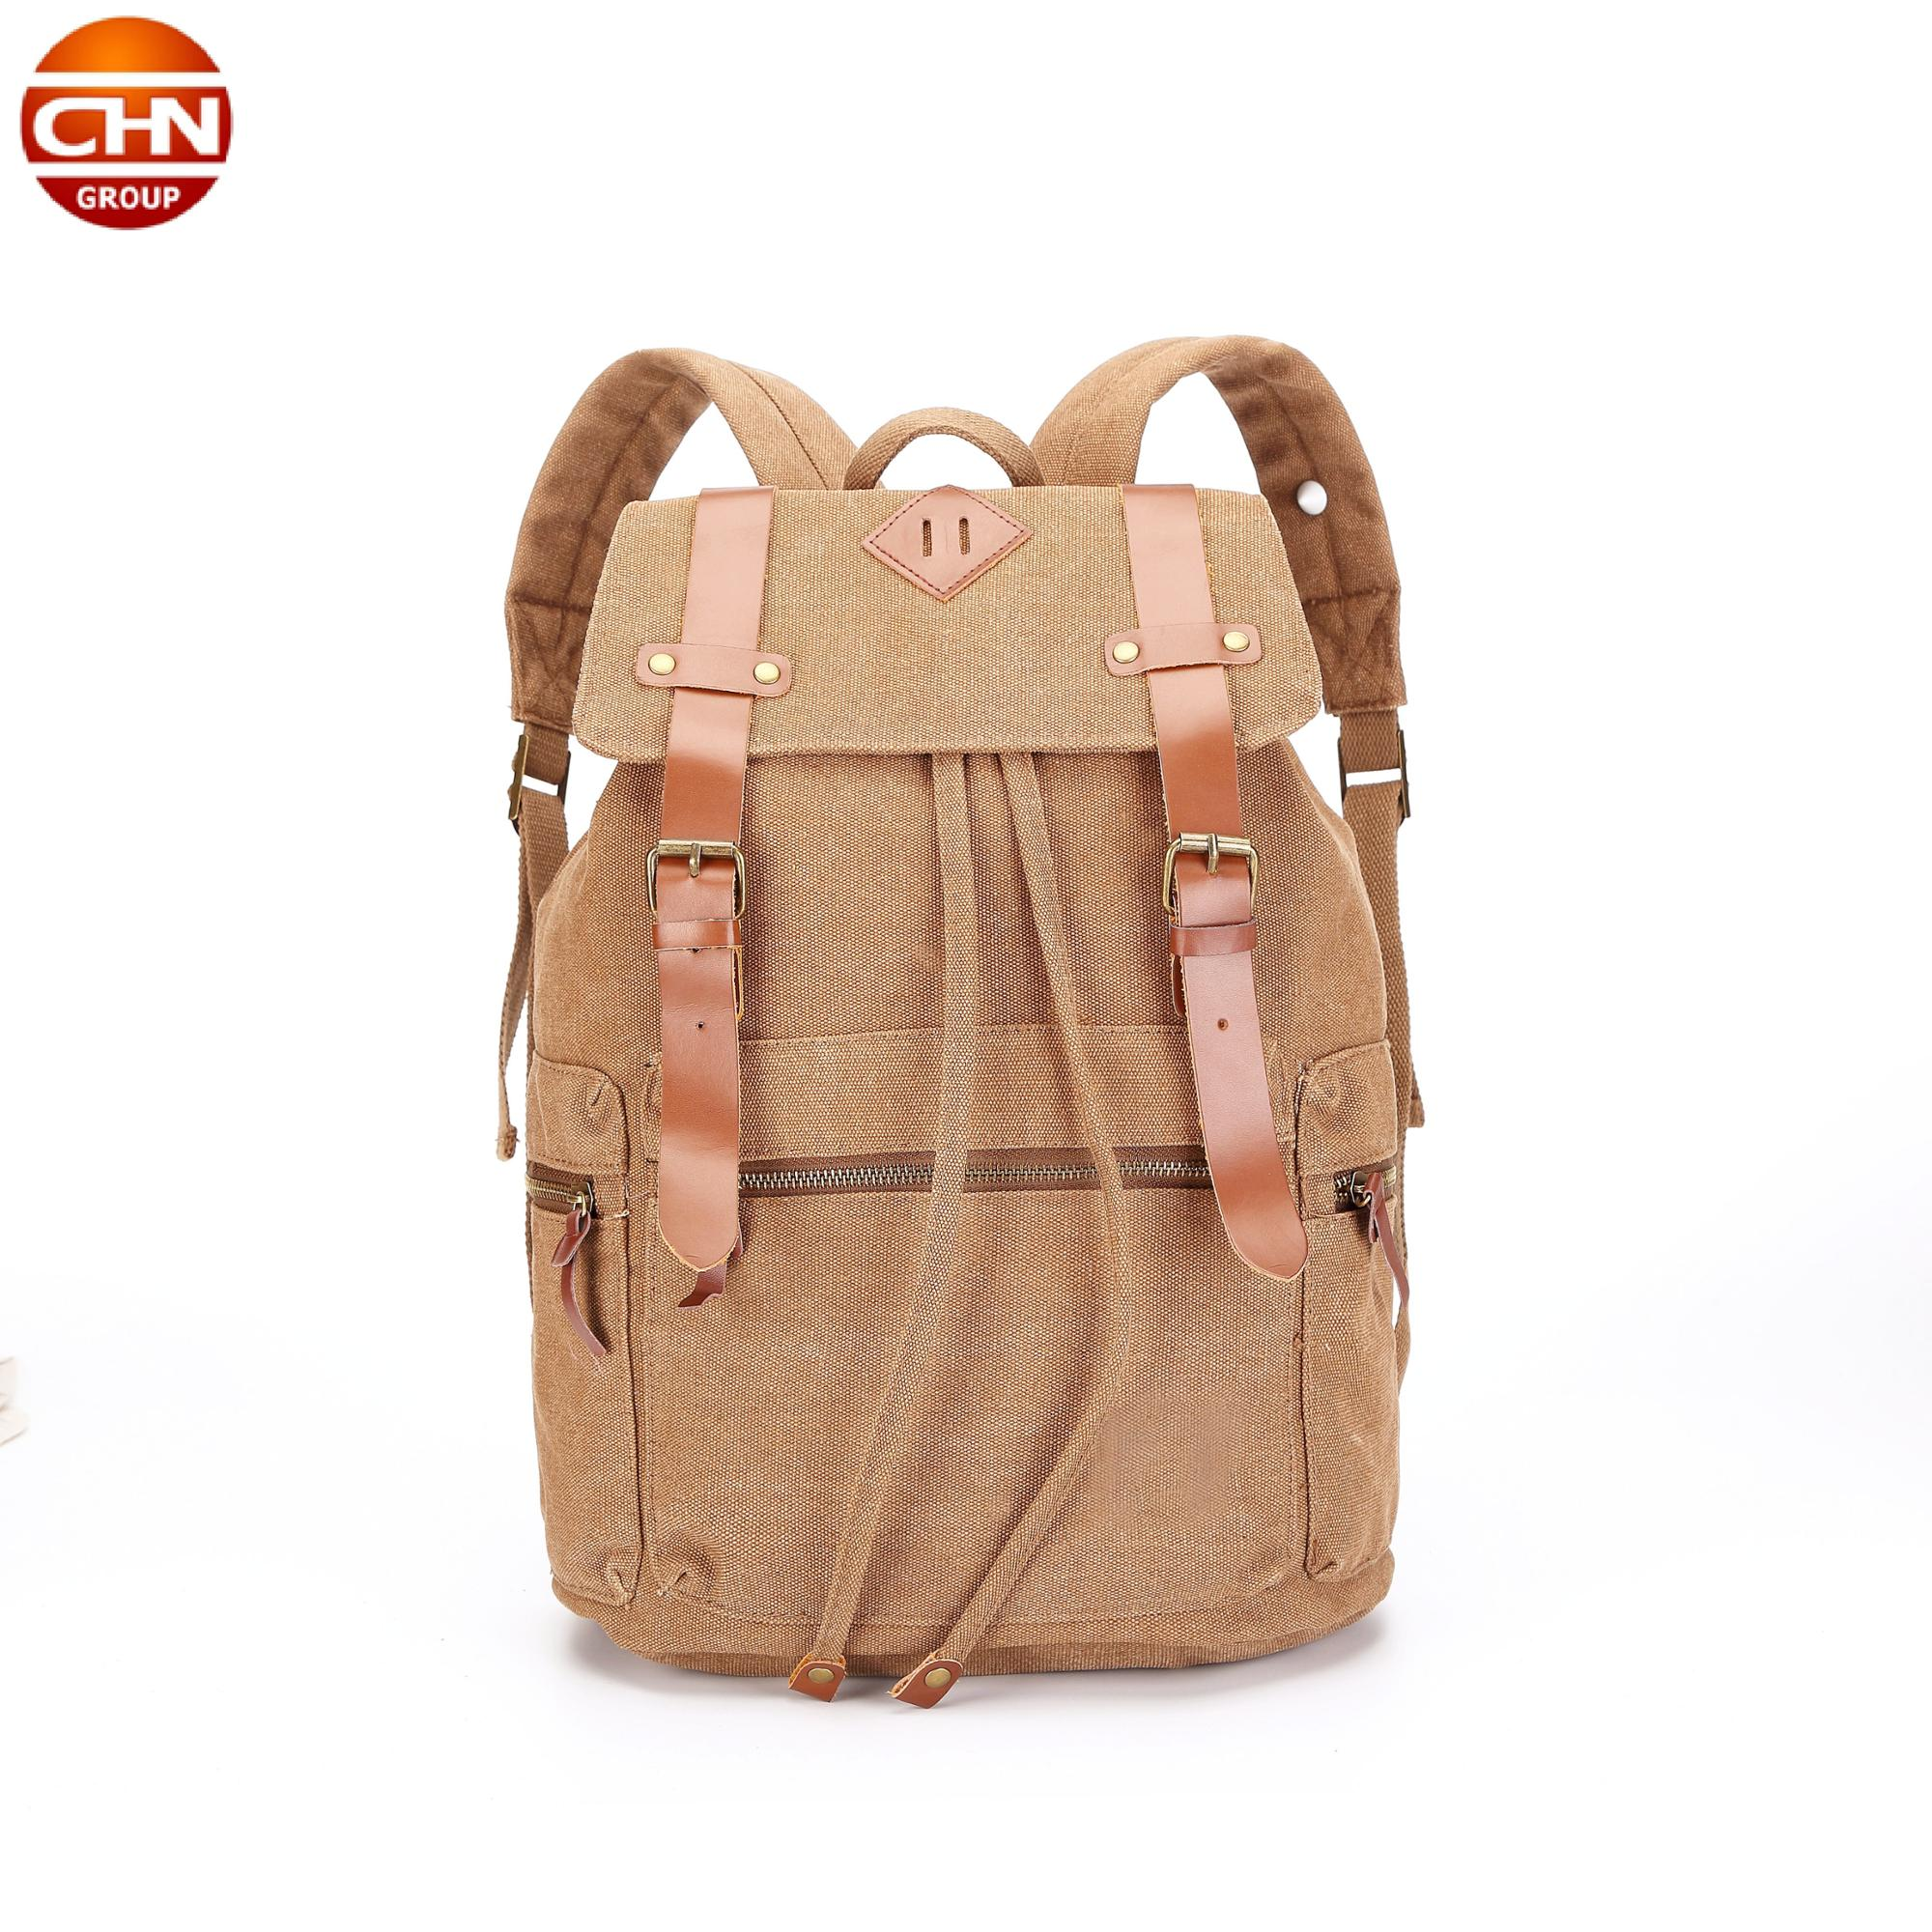 Fashion Cotton Canvas Backpack Drawstring travel backpack school bags trendy backpack 2018